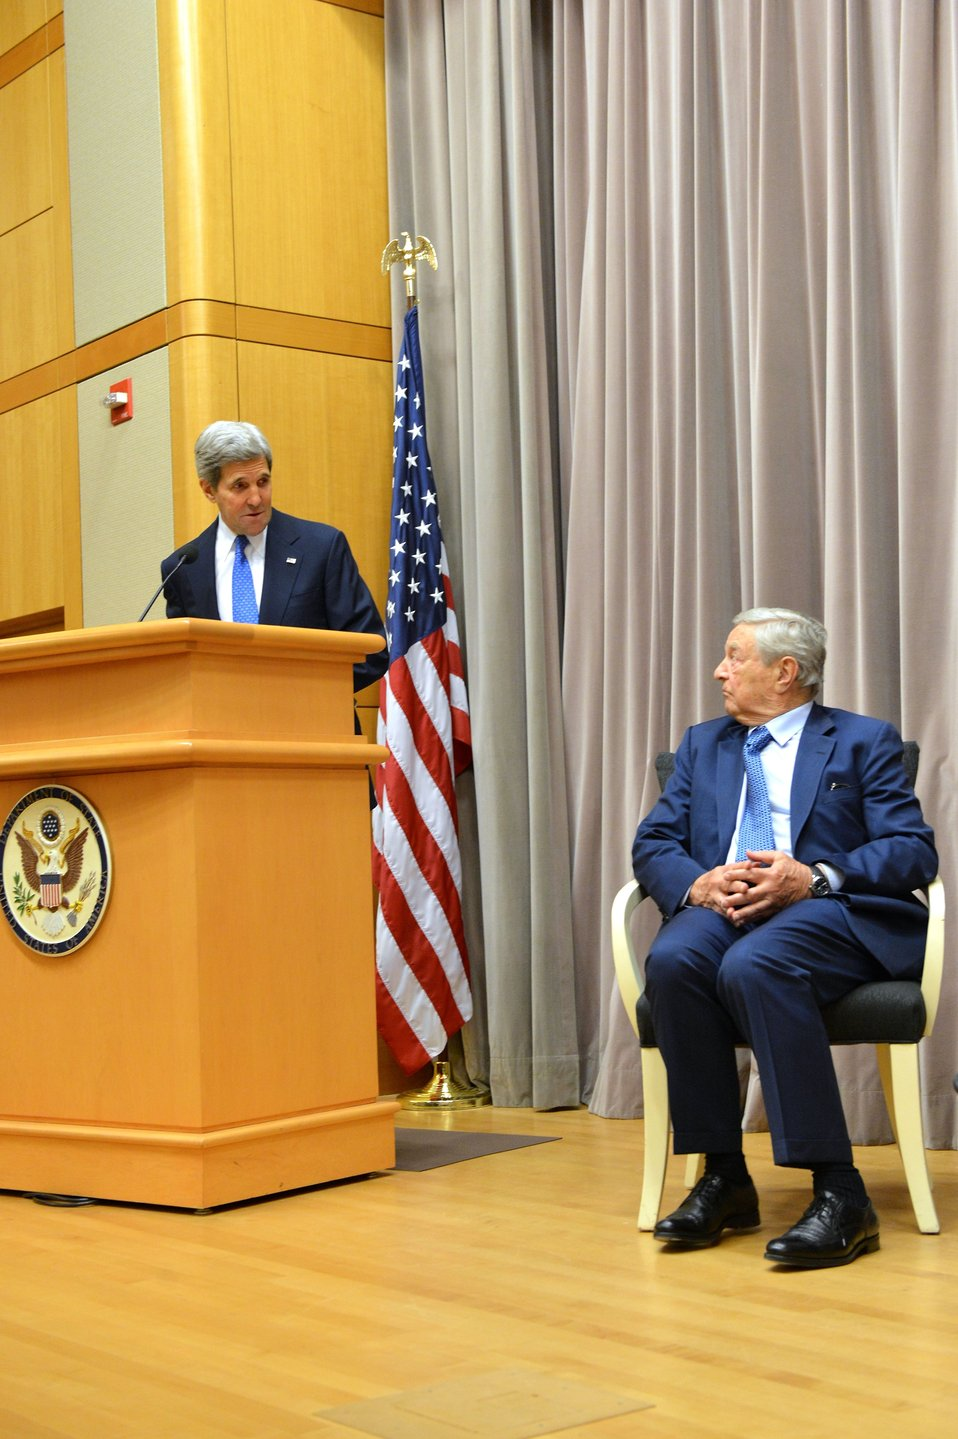 Secretary Kerry Introduces George Soros to the Open Forum